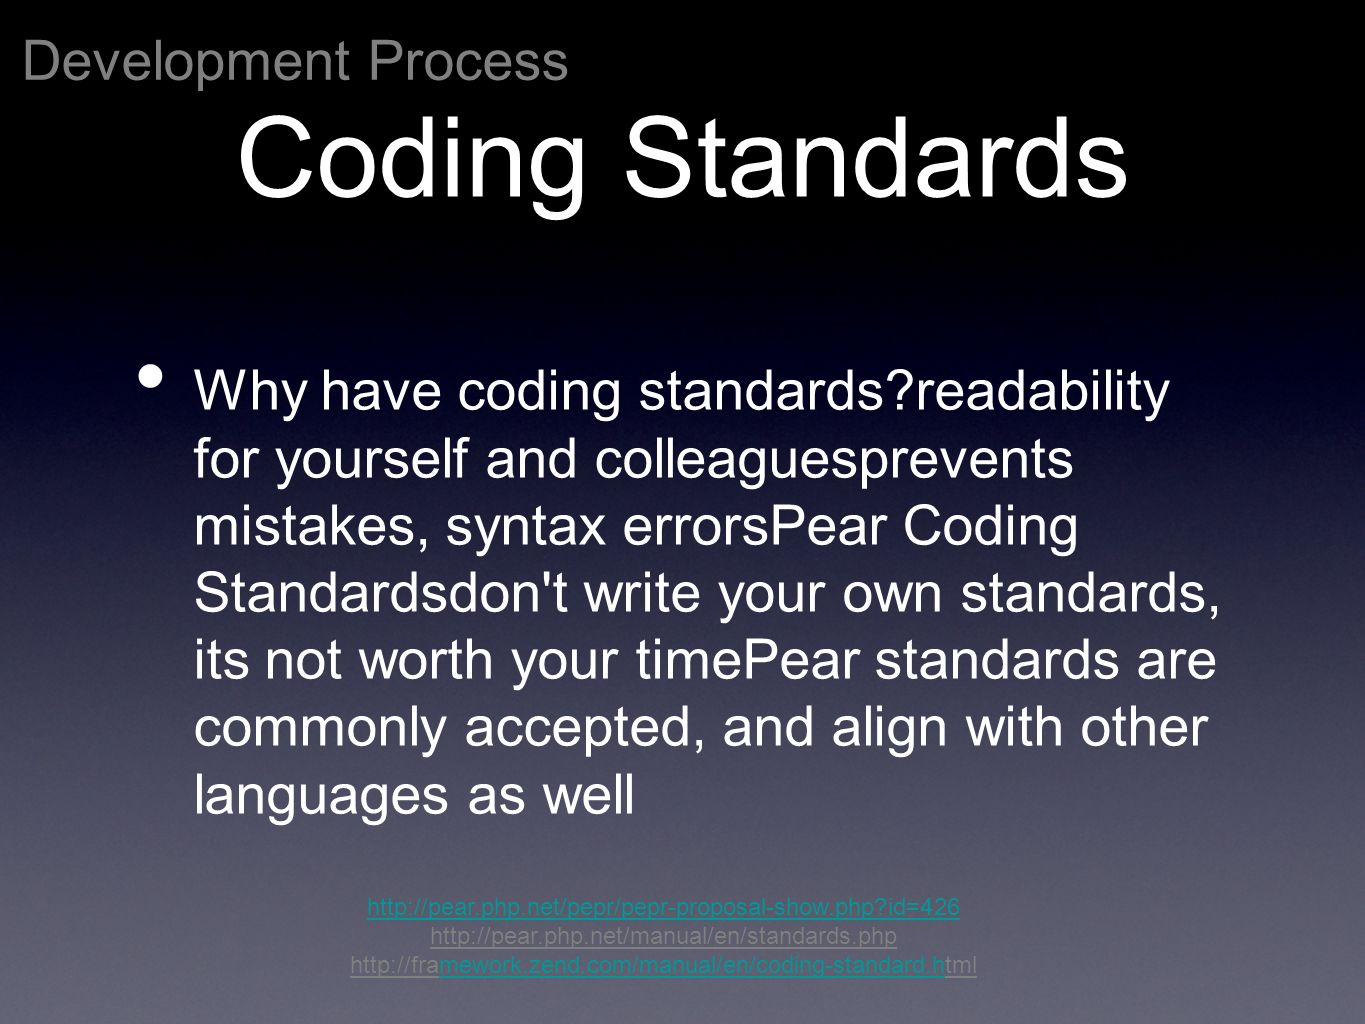 Development Process http://pear.php.net/pepr/pepr-proposal-show.php?id=426 http://pear.php.net/manual/en/standards.php http://framework.zend.com/manua